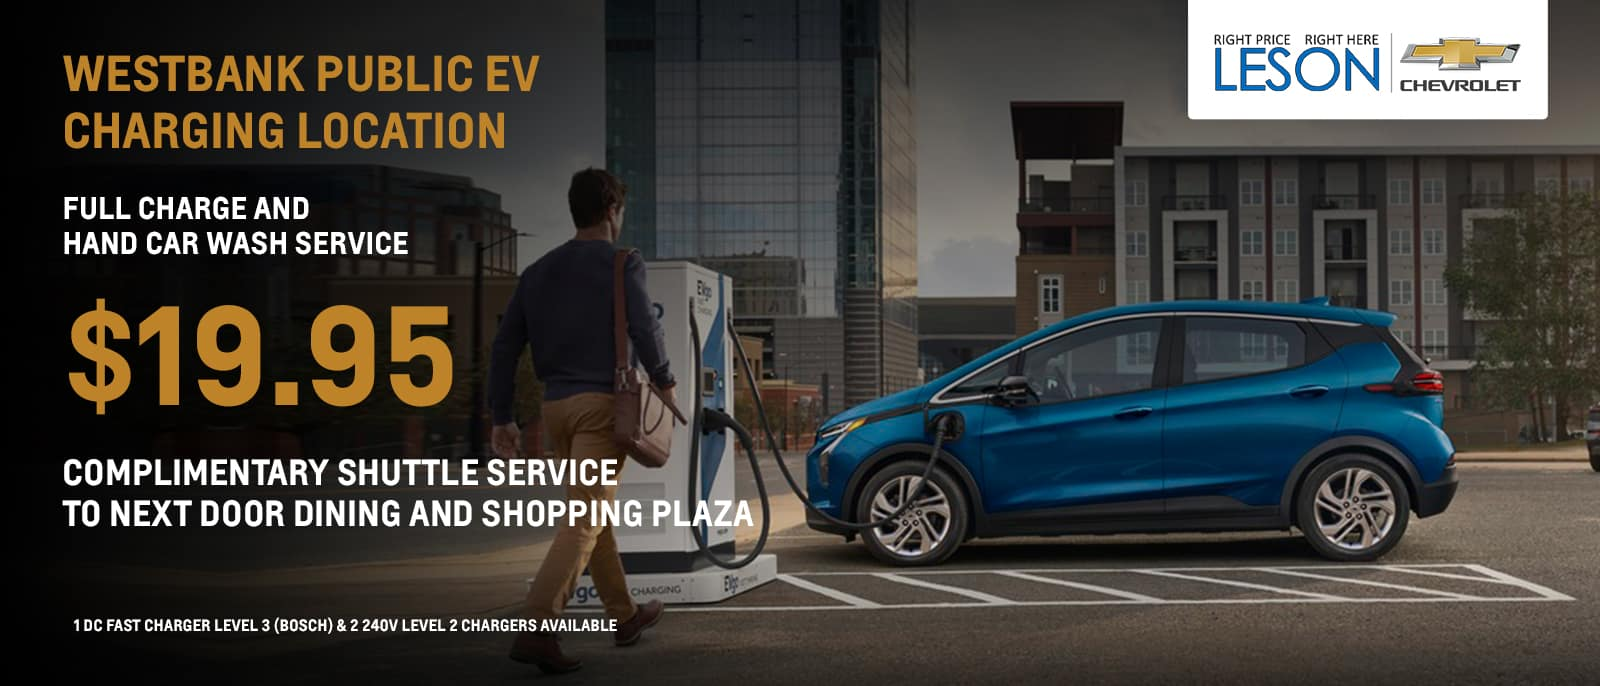 Full Charge and Hand Car Wash Service